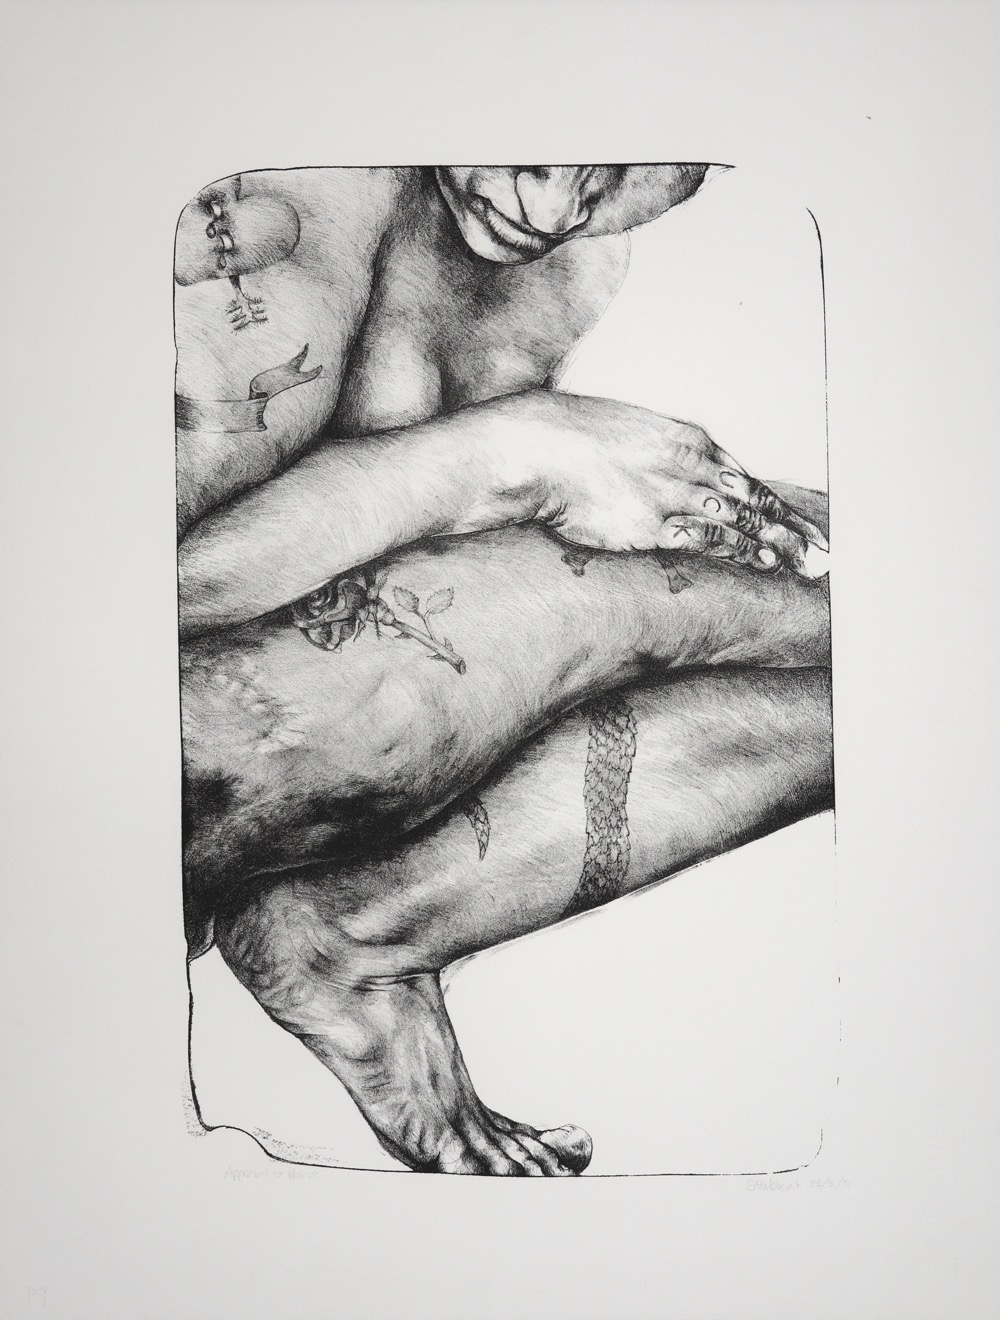 Close up side view of woman crouching with tatoos on limbs and  fingers